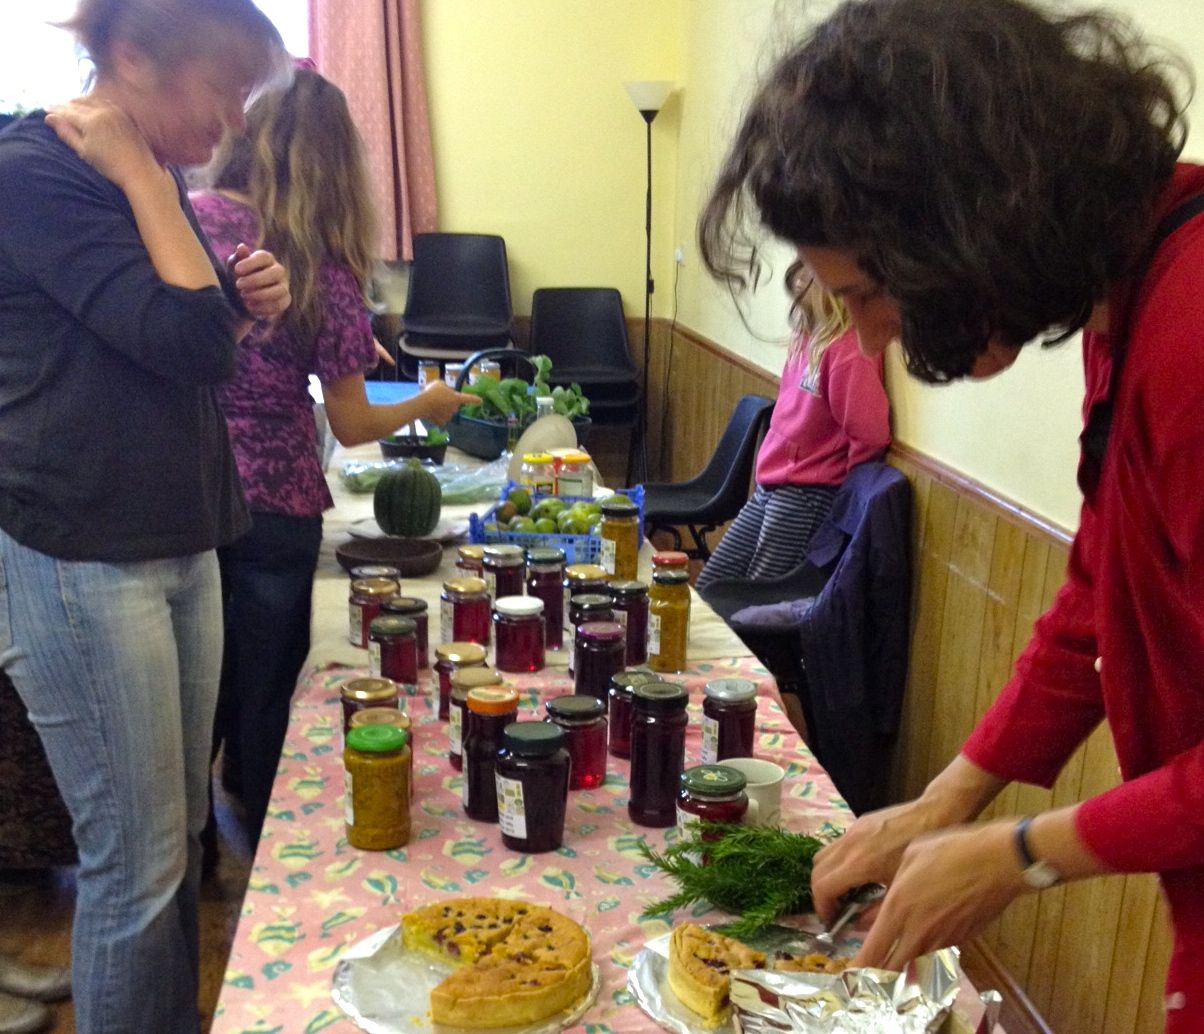 Totnes food swap